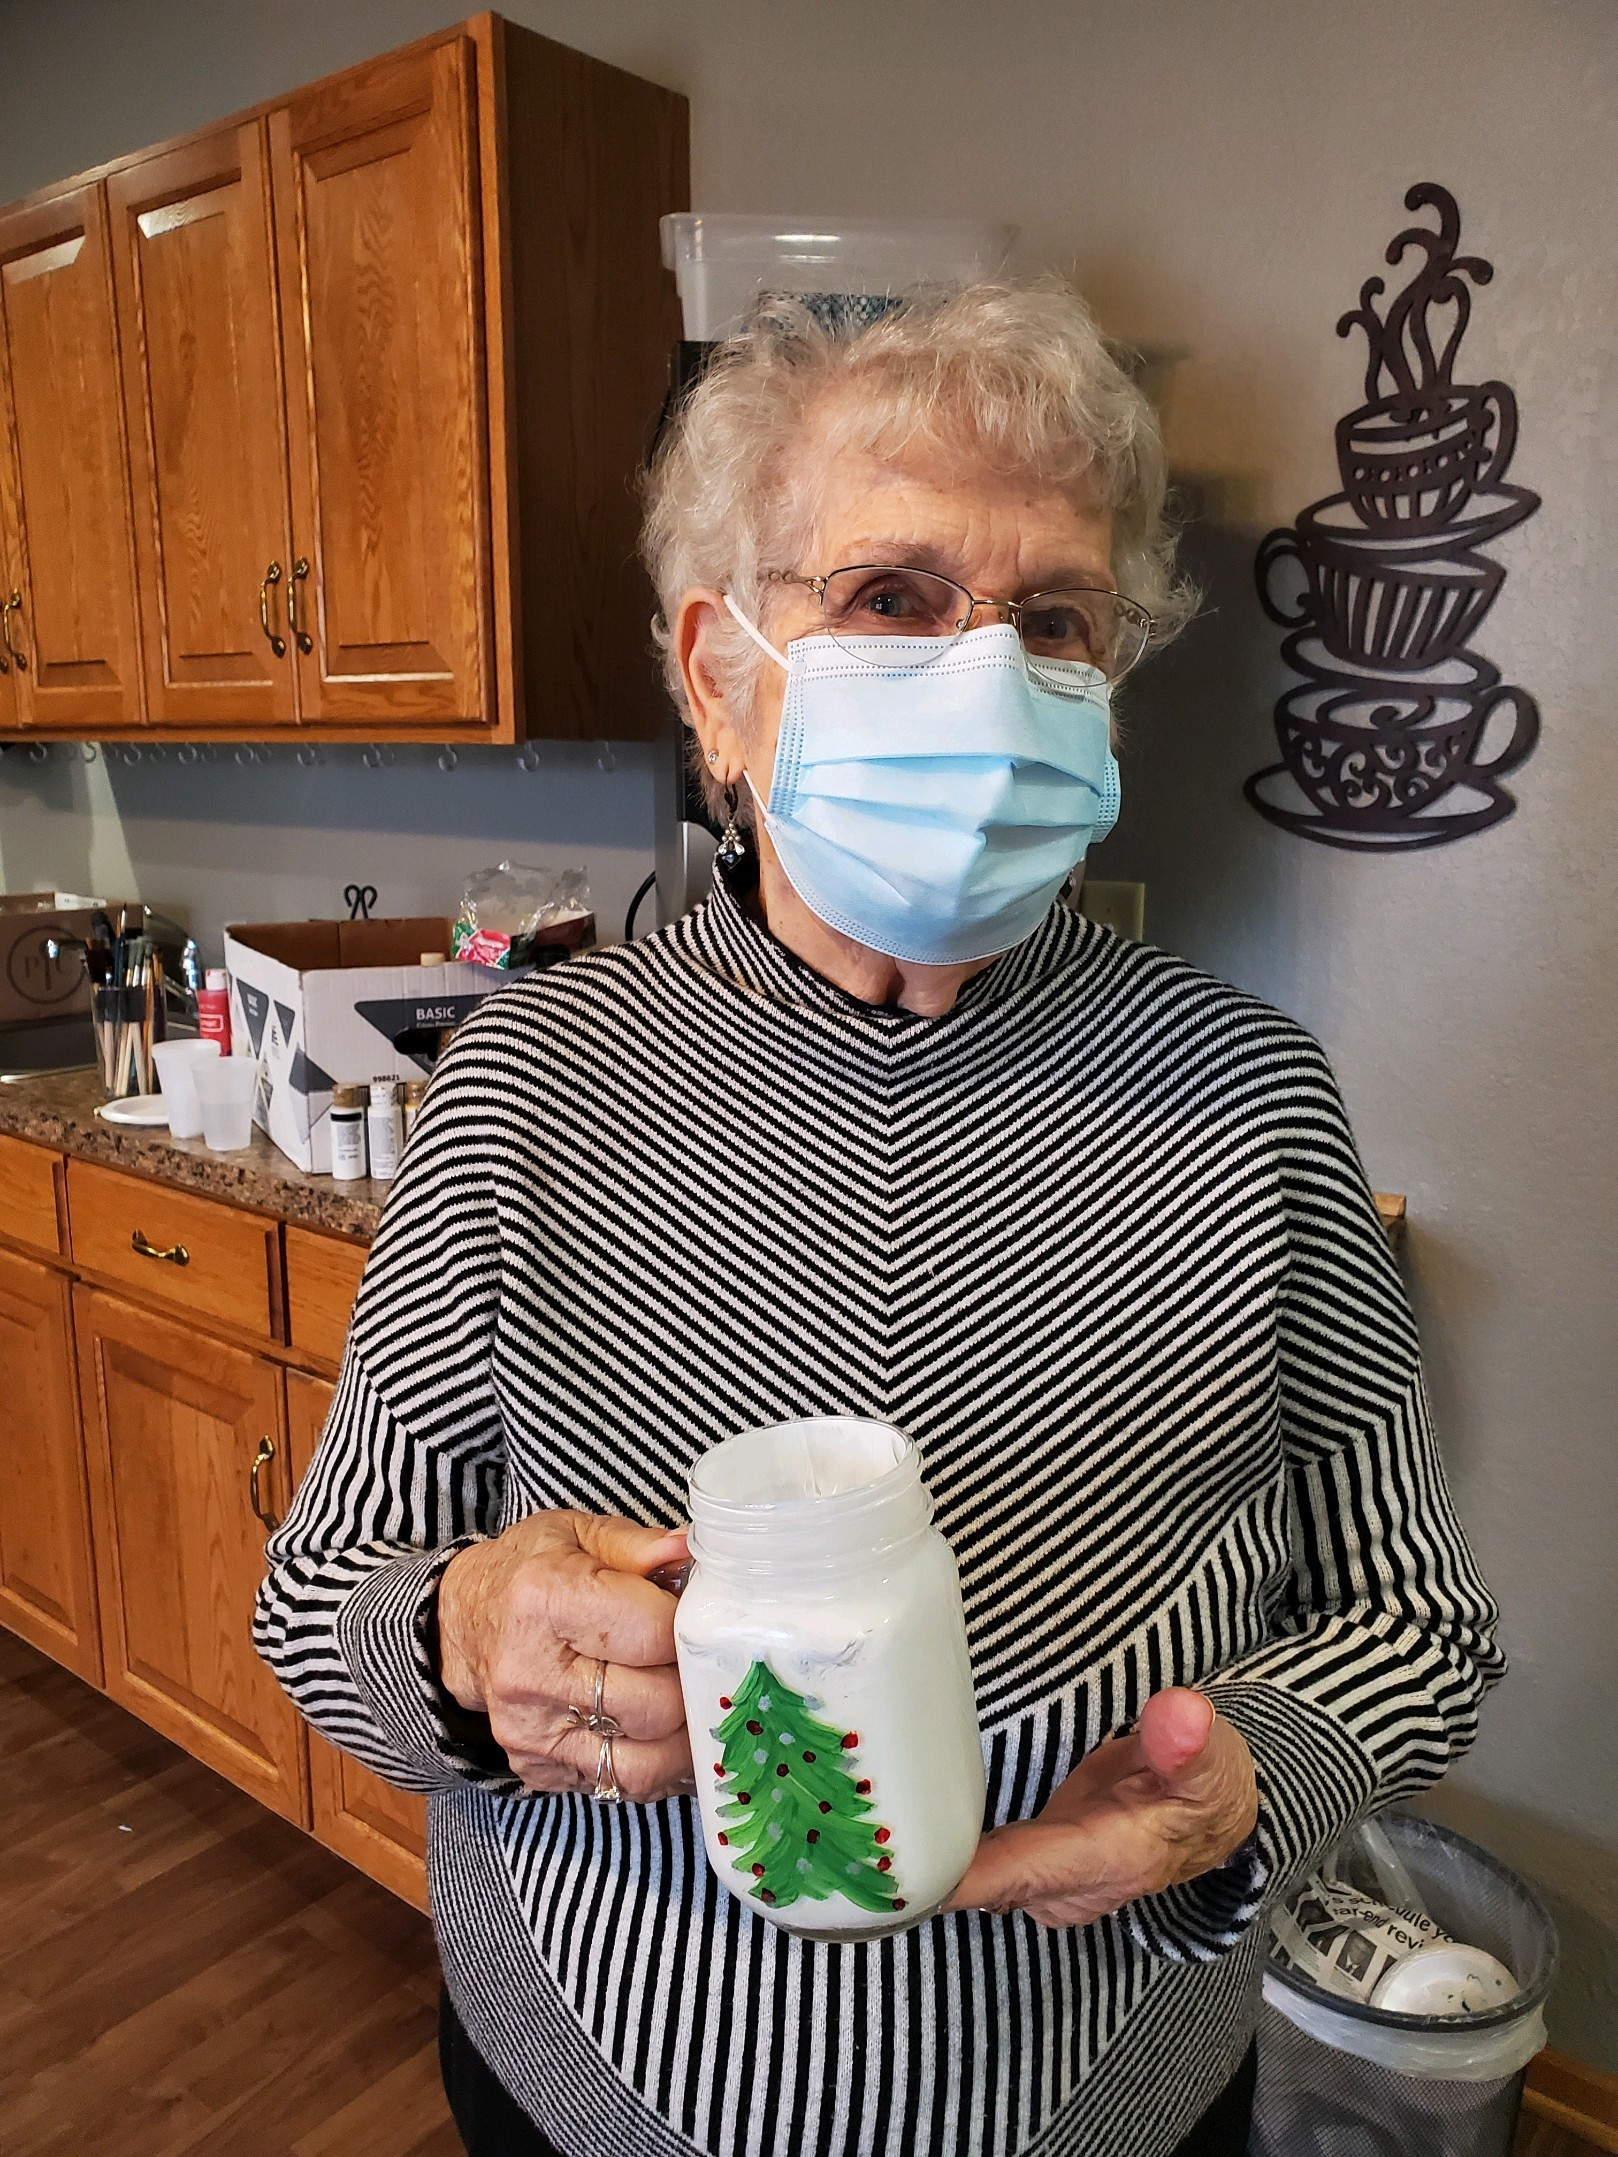 Norma celebrates National Mason jar day with a winter painting!